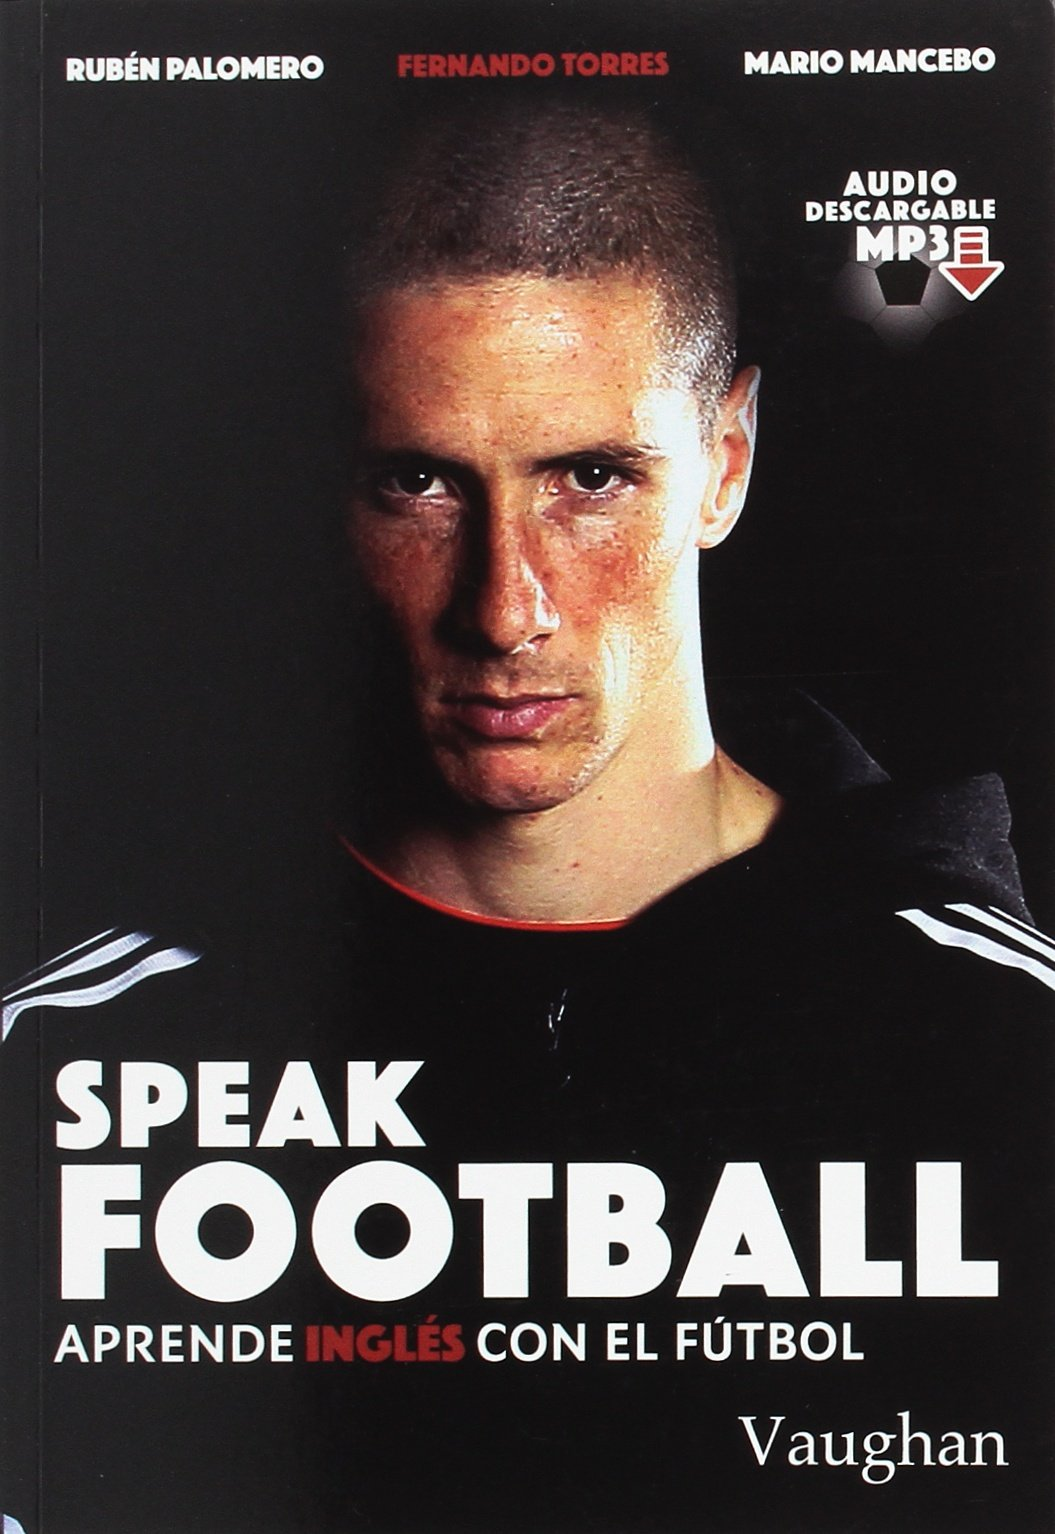 Comprar libro Speak Football